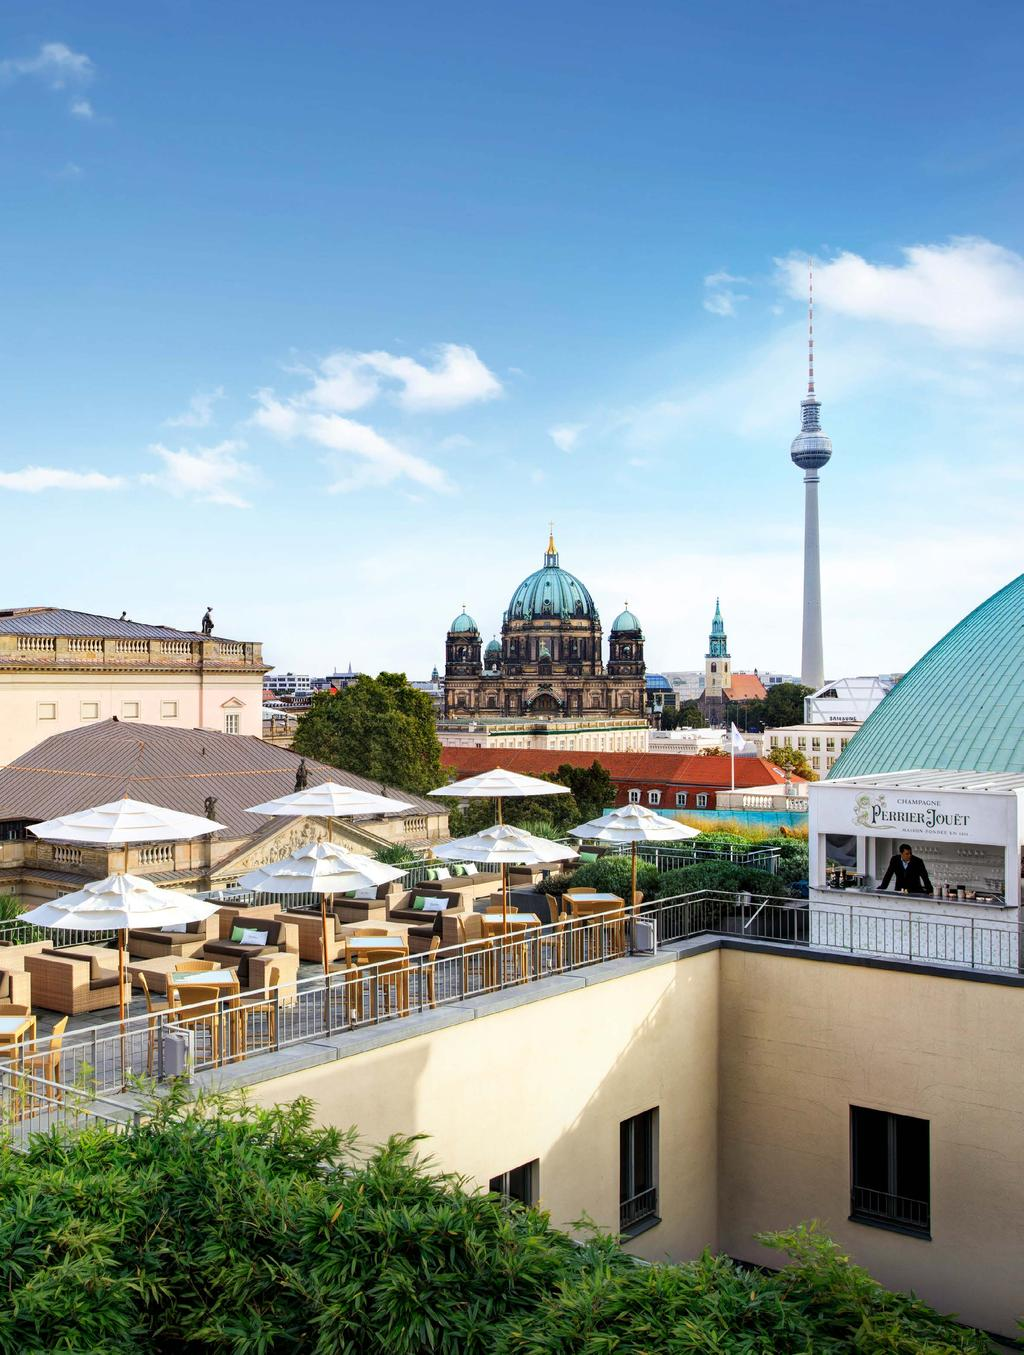 An elegant outpost in the centre of up-all-night Berlin. A relaxed hideaway in the animated Mitte District. A grand bank on Bebelplatz transformed into an intimate, artistic hotel: Hotel de Rome.